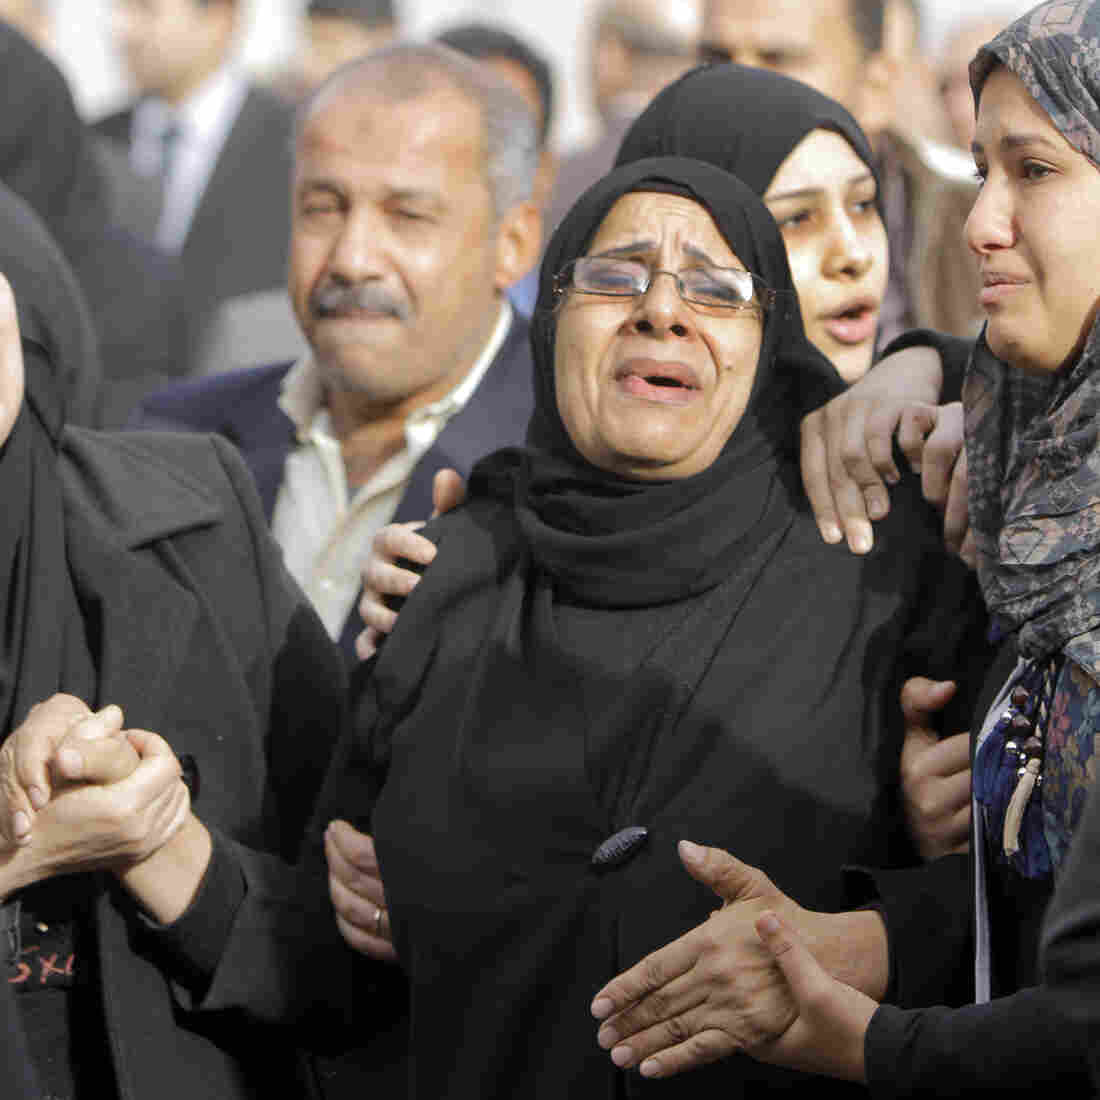 Relatives of the Egyptian policemen who were killed in Port Said grieve during their military funeral in Cairo on Sunday.